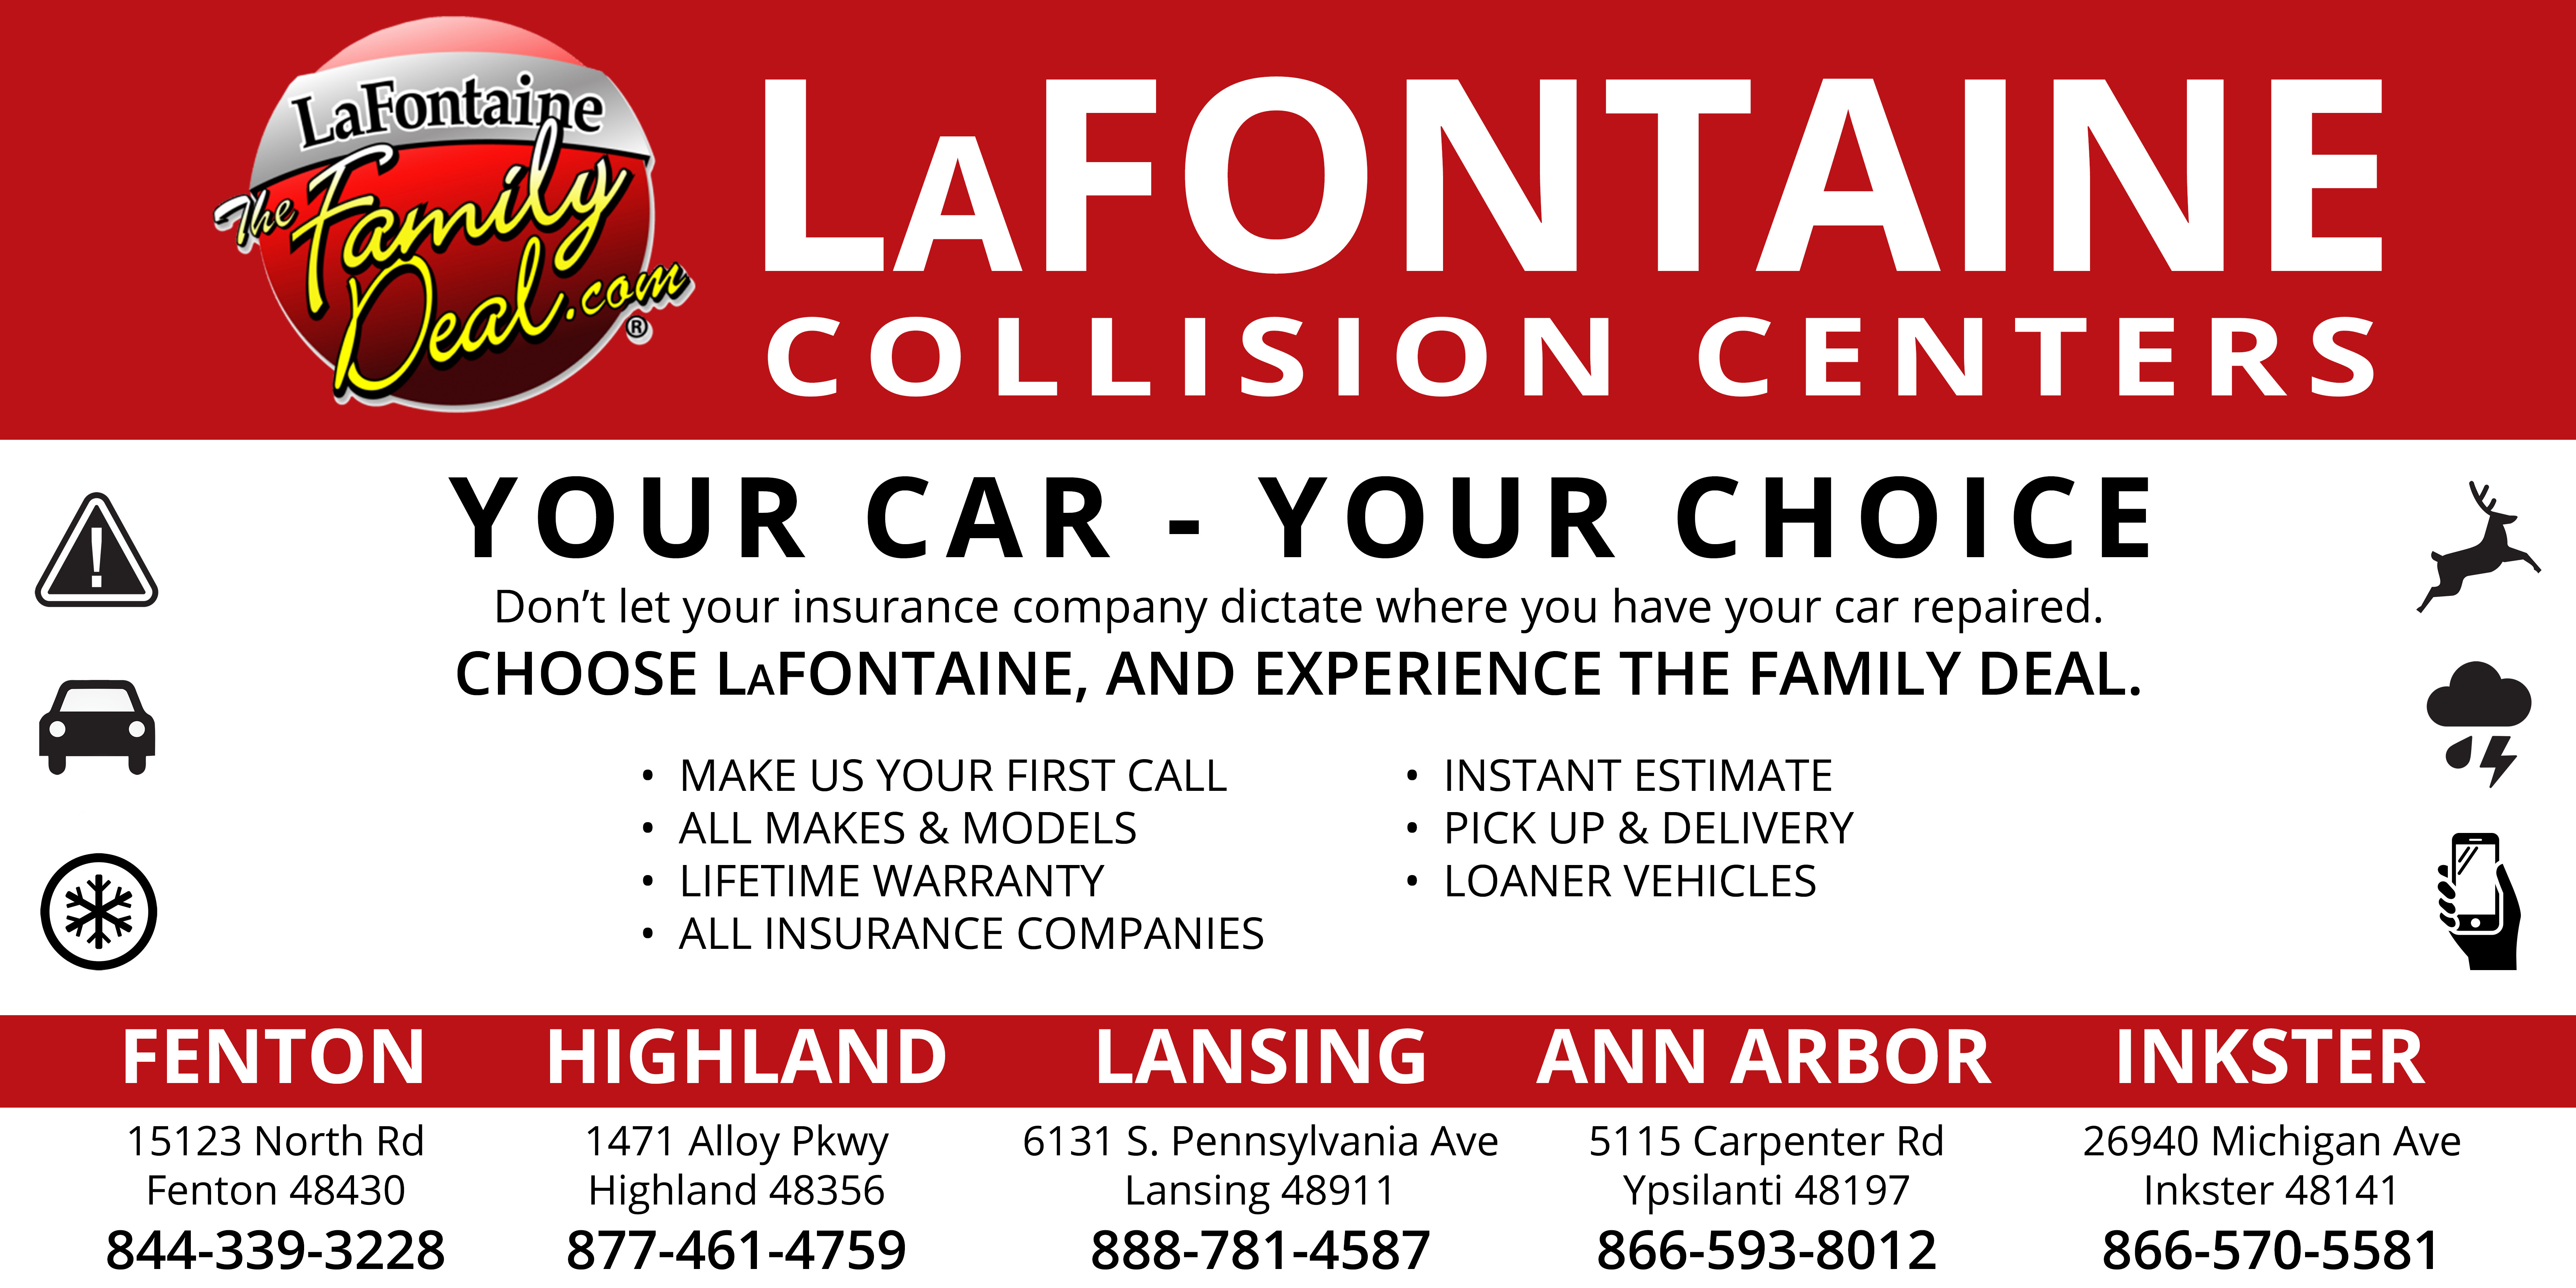 Automotive Body Shop Collision Paint Repair LaFontaine Used Cars - Signs of cars with names